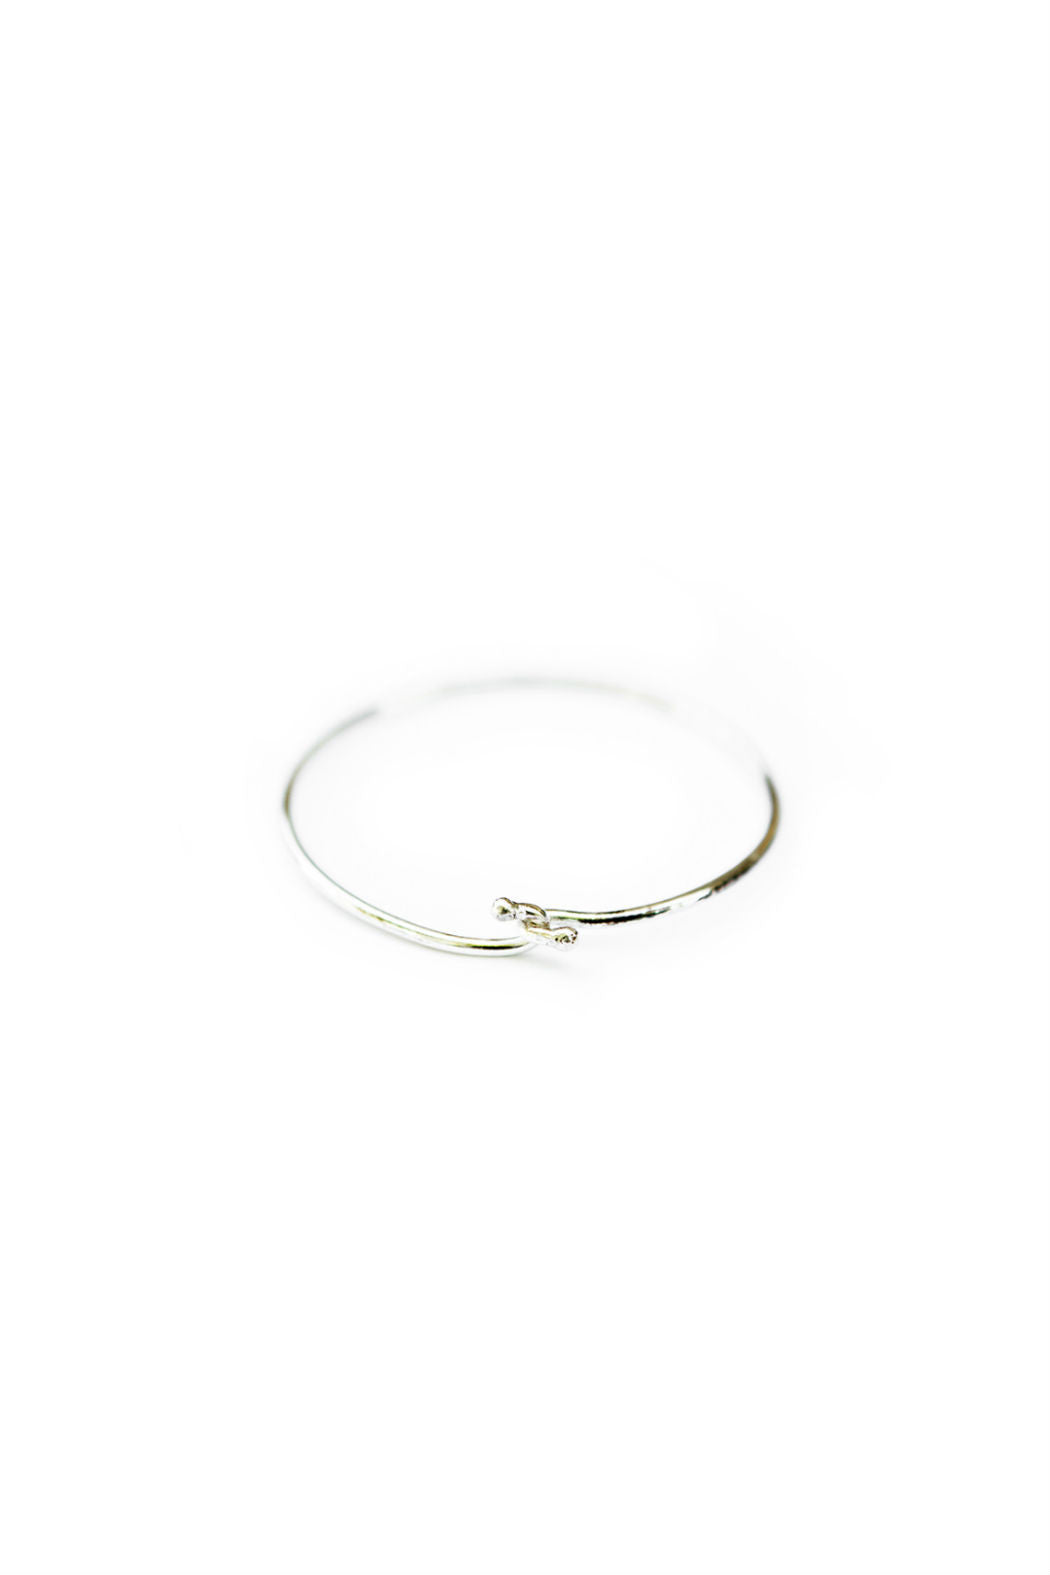 Sterling Silver Childs Knot Bracelet - New Orientation